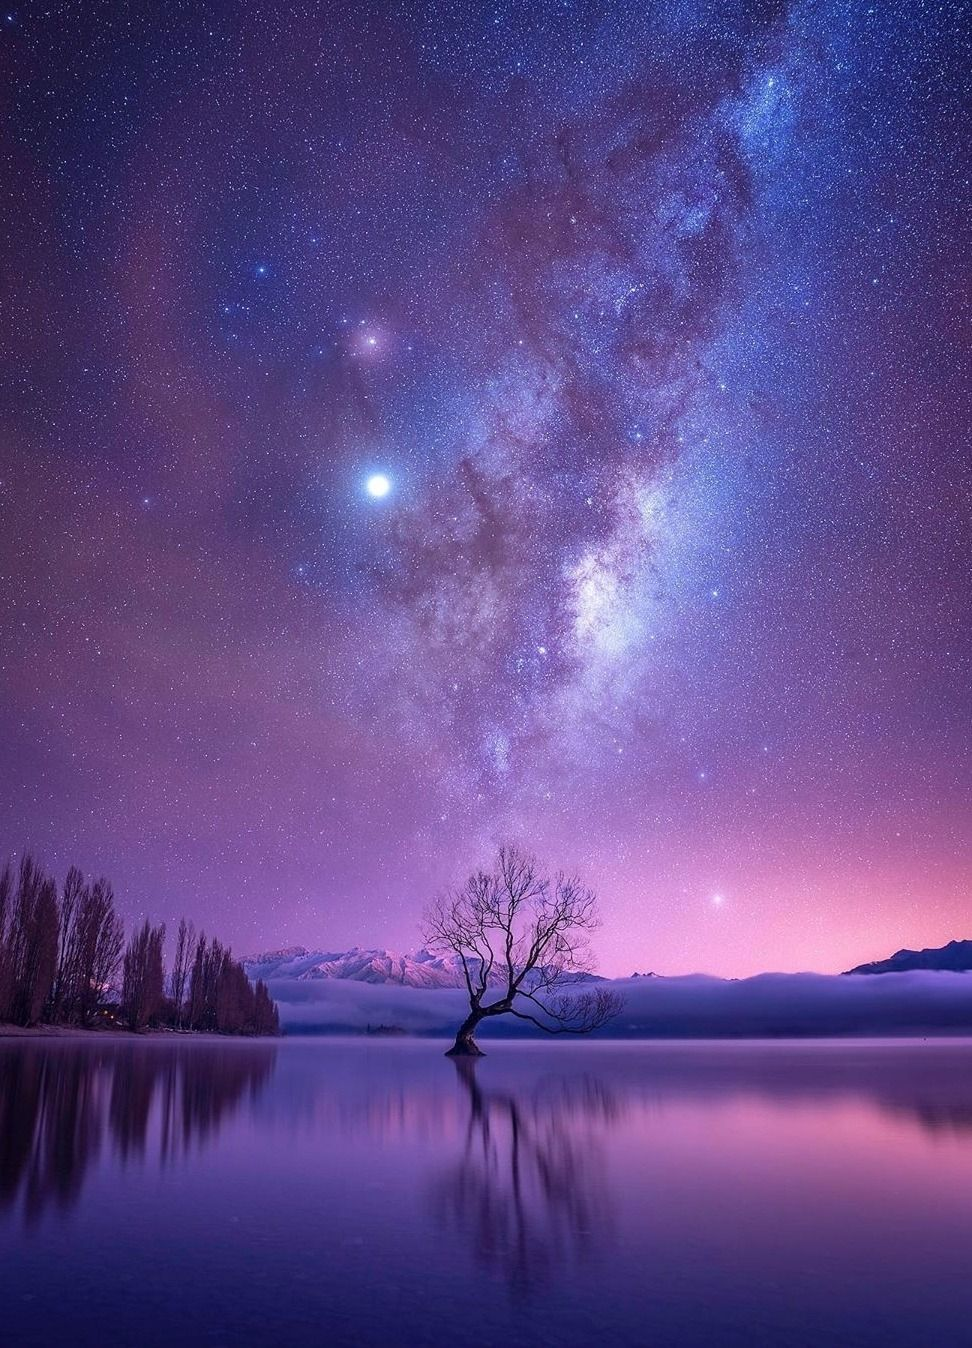 Landsc Pe With Images Dream Landscape Night Skies Milky Way